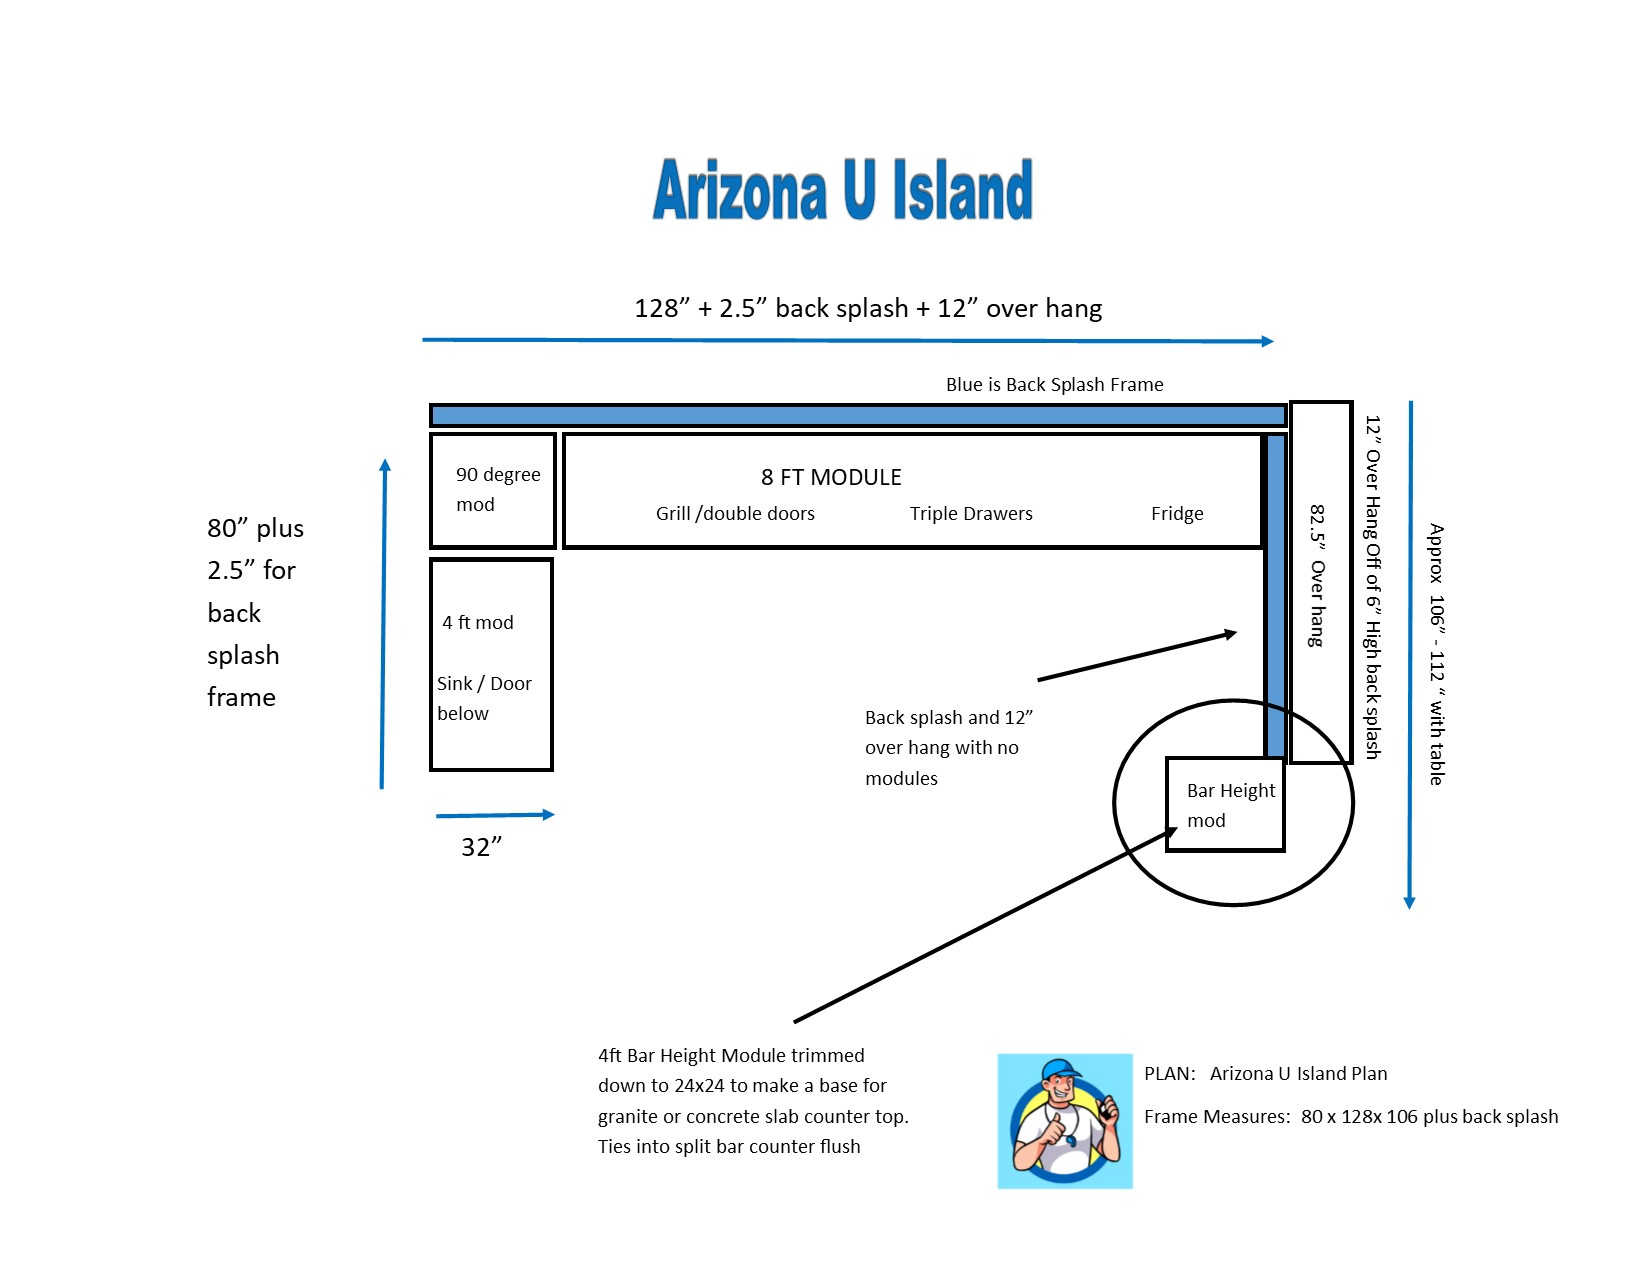 arizona-u-island-plan.jpg